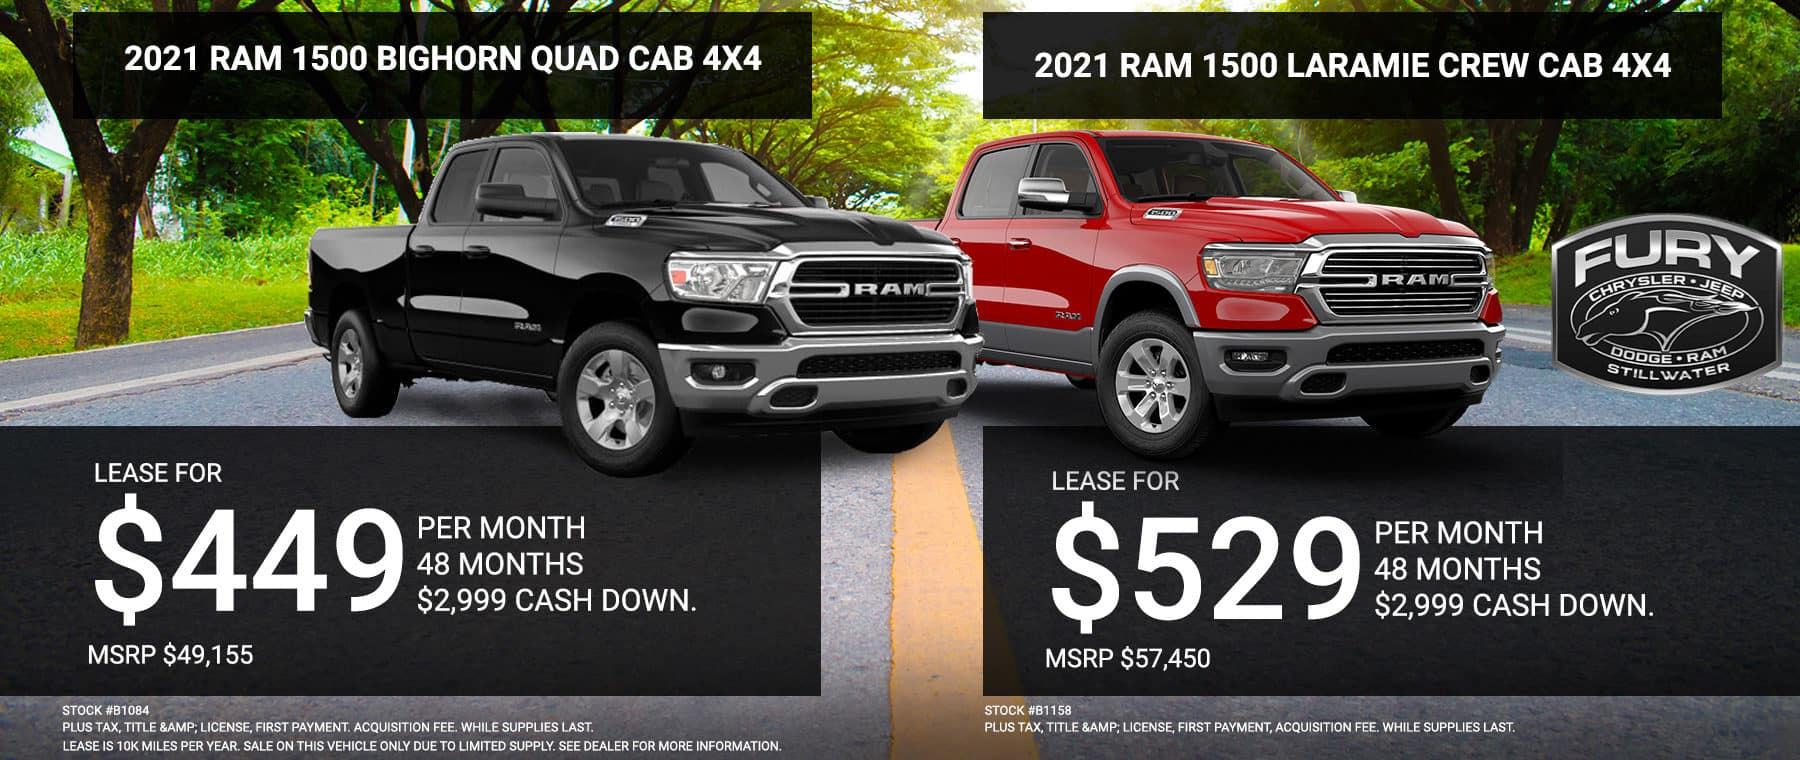 2021 RAM 1500 Bighorn Quad Cab 4x4 - Stock #B1084. Lease For $449 per month @ 48 months w/ $2,999 Cash Down. MSRP $49,155. Plus Tax, Title & License, First Payment. Acquisition Fee. While Supplies Last. 2021 RAM 1500 Laramie Crew Cab 4x4 - Stock #B1158. Lease For $529 per month @ 48 months w/$2,999 Cash Down - MSRP $57,45. Plus Tax, Title & License, First Payment, Acquisition Fee. While Supplies Last.